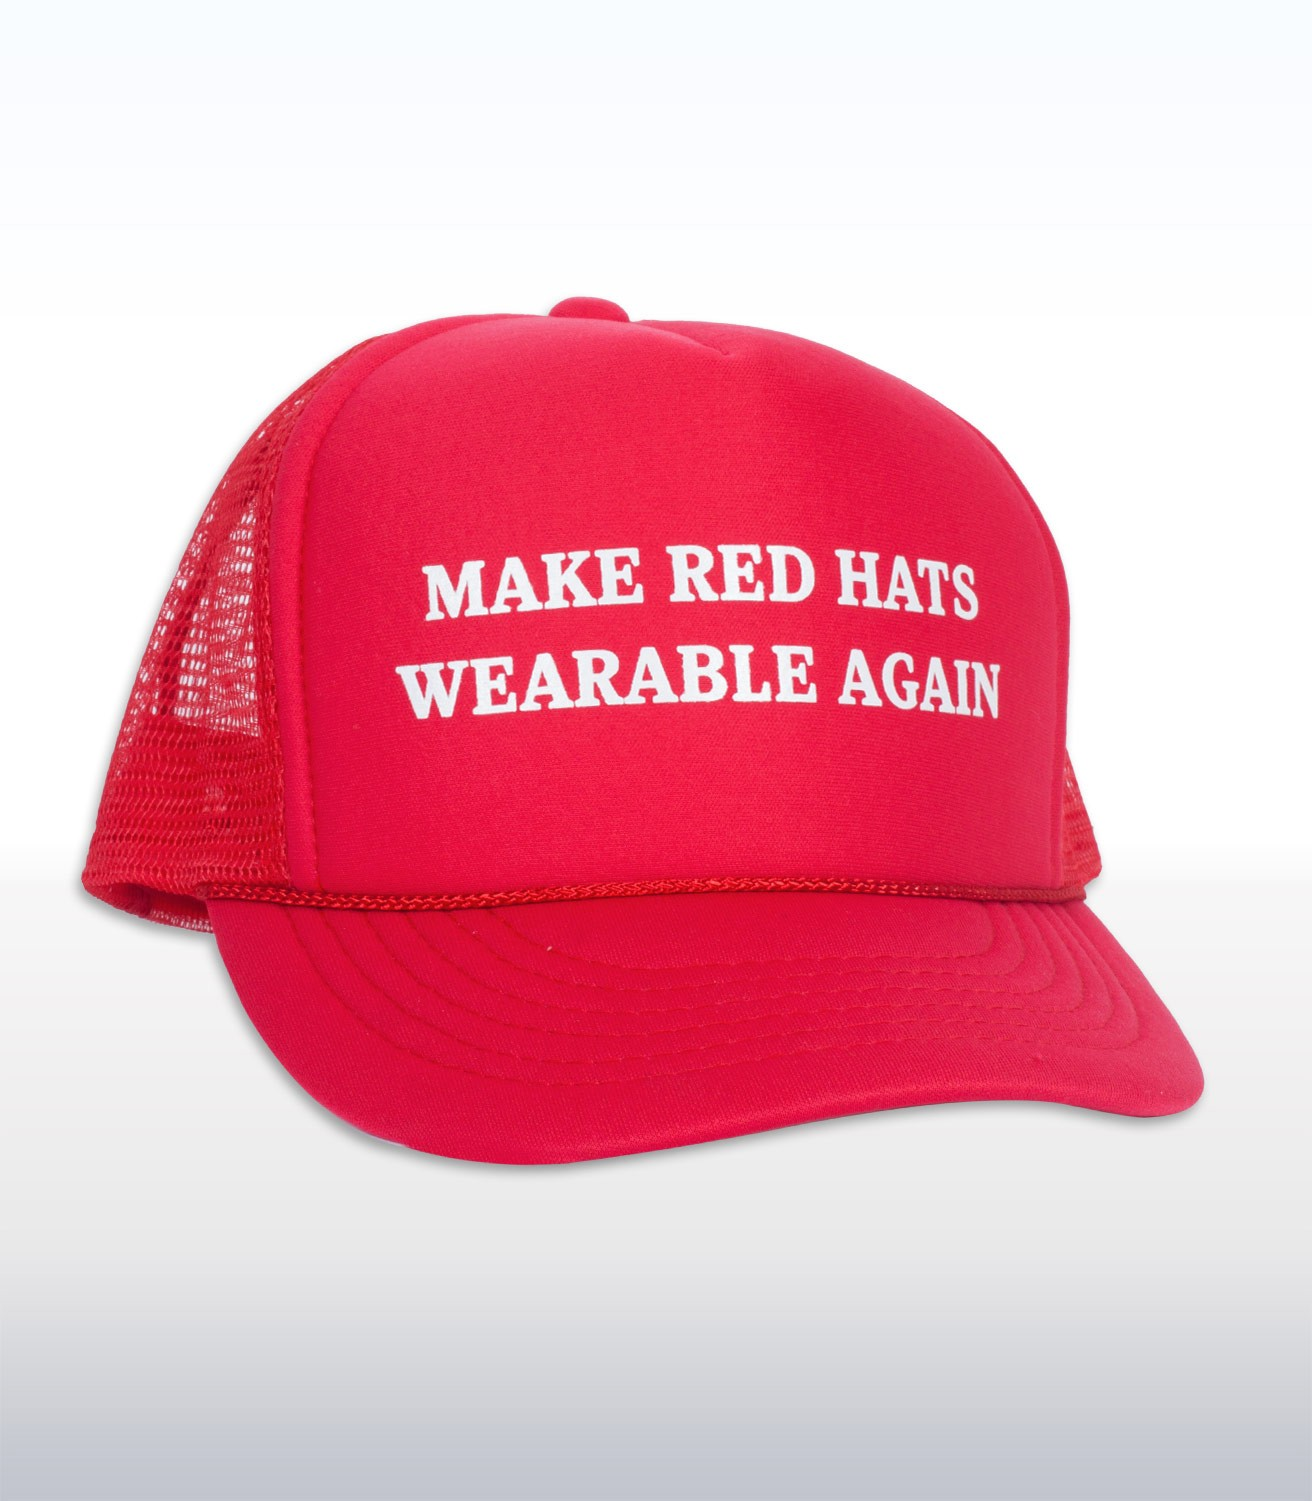 Make Red Hats Wearable Again Funny Trucker Cap   Hat  445f938ec19